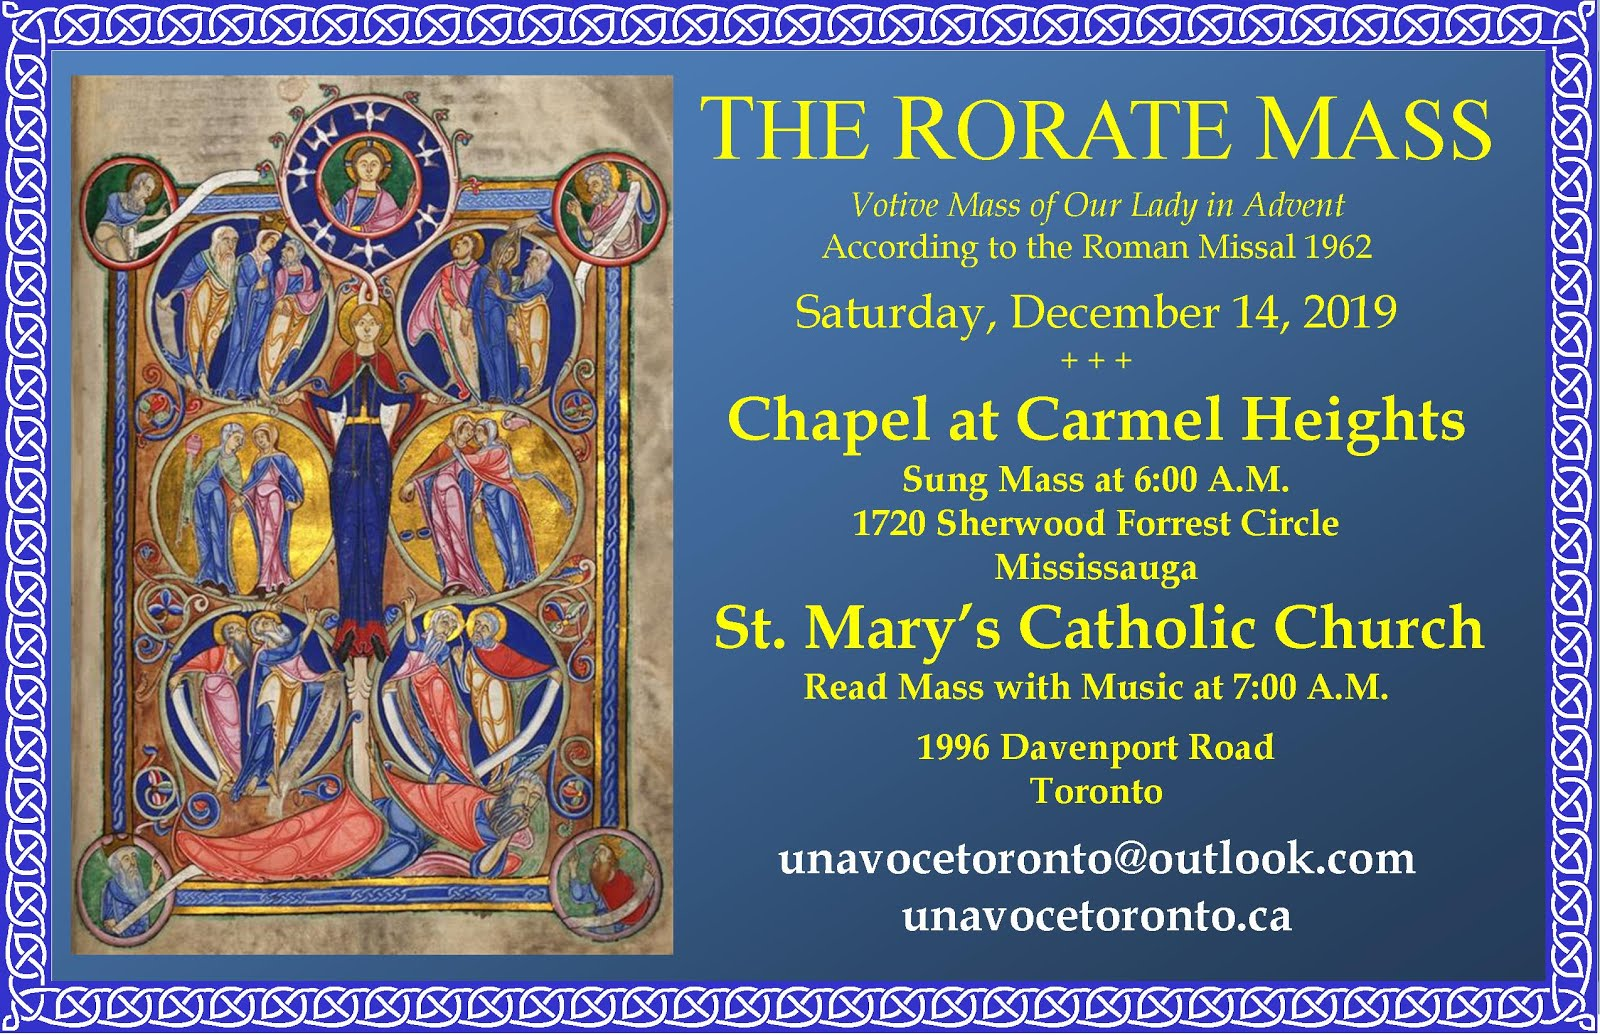 Rorate Mass in Toronto